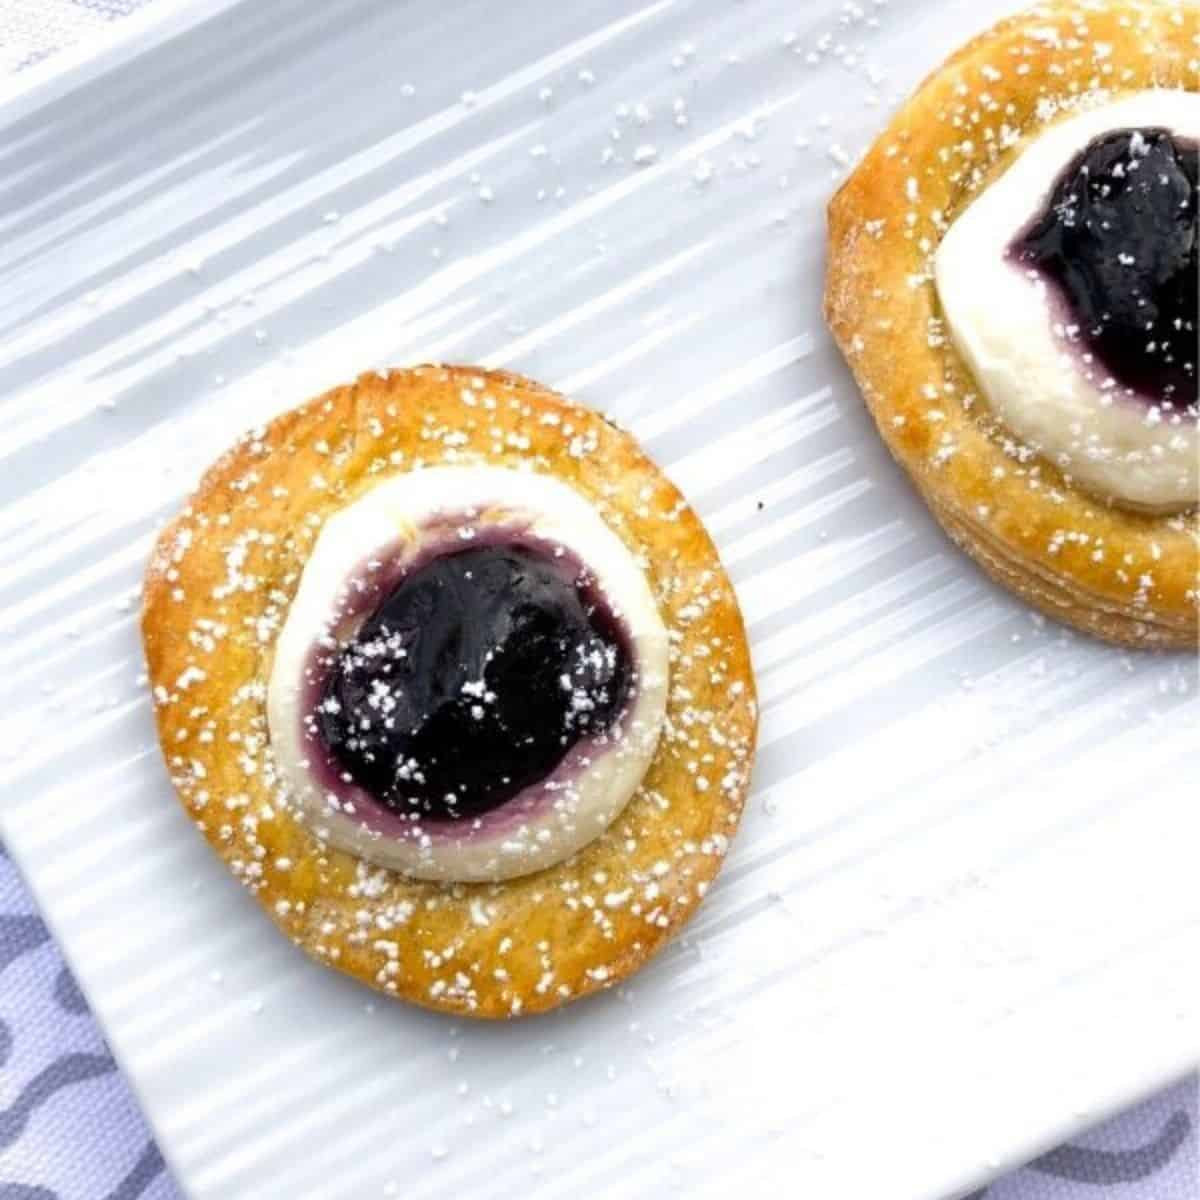 crescent dough rounds topped with sweet cream cheese and blueberries